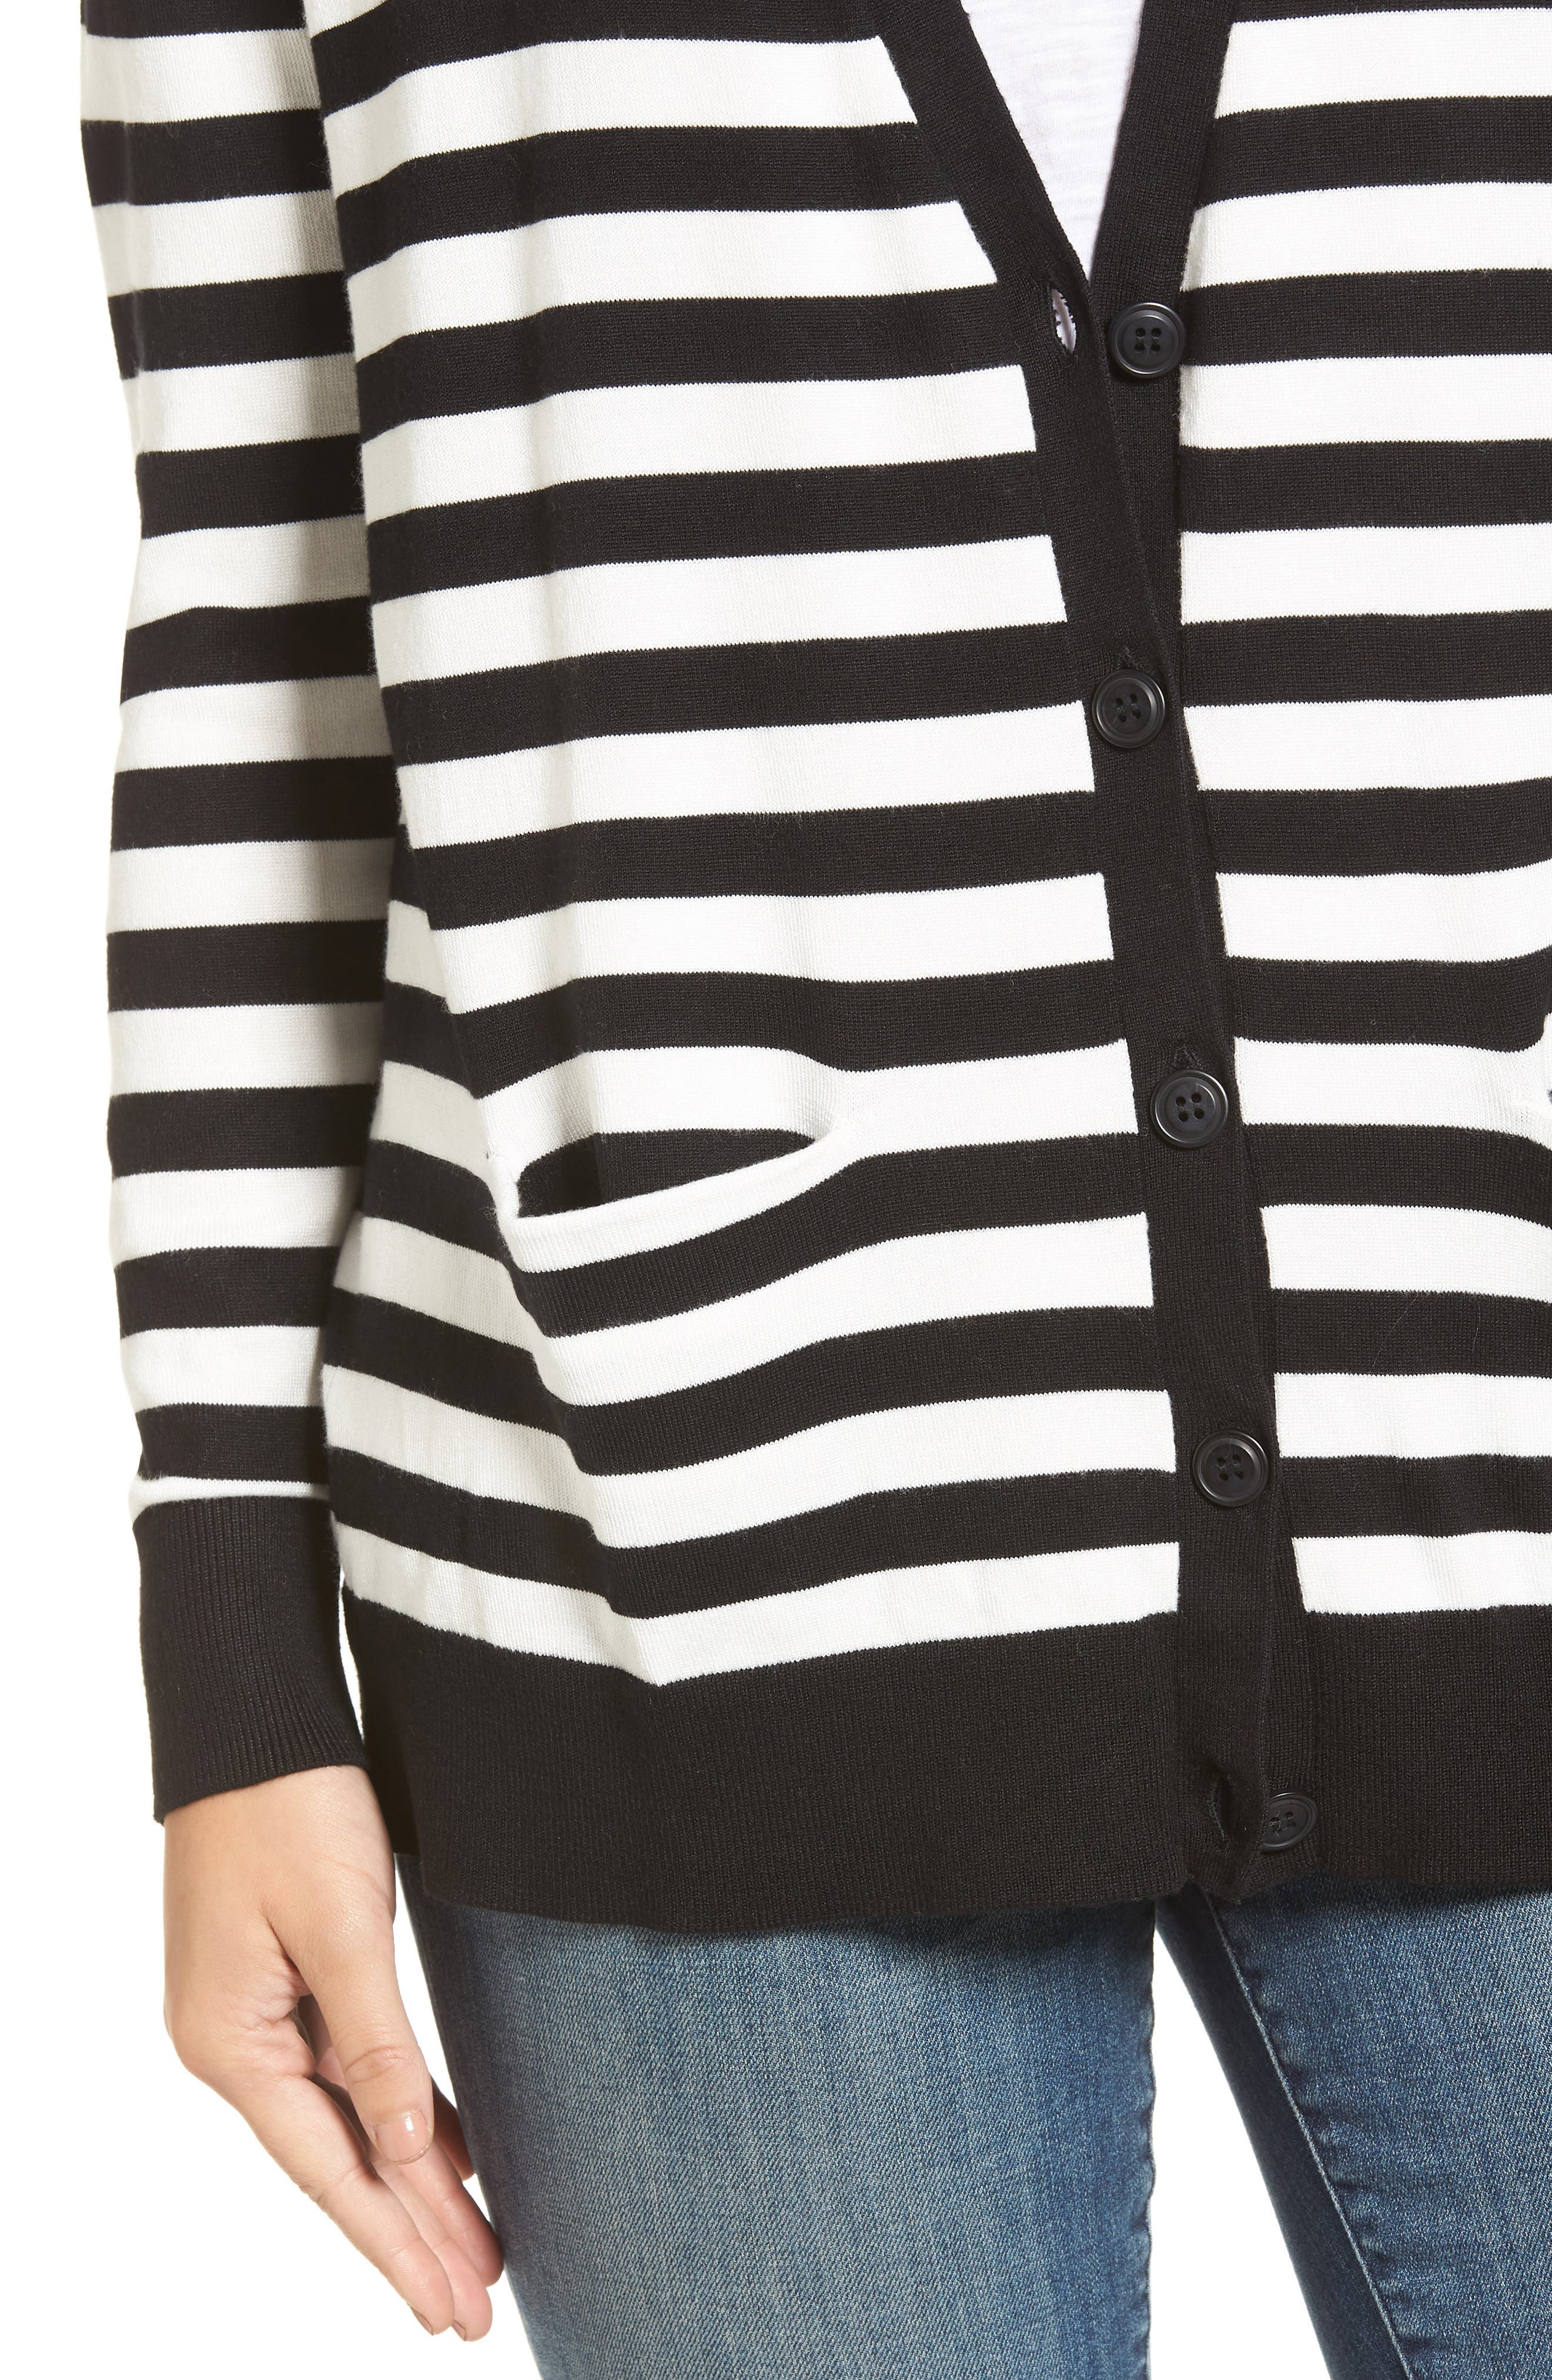 Relaxed Pocket Cardigan,                             Alternate thumbnail 5, color,                             Black- Ivory Stripe